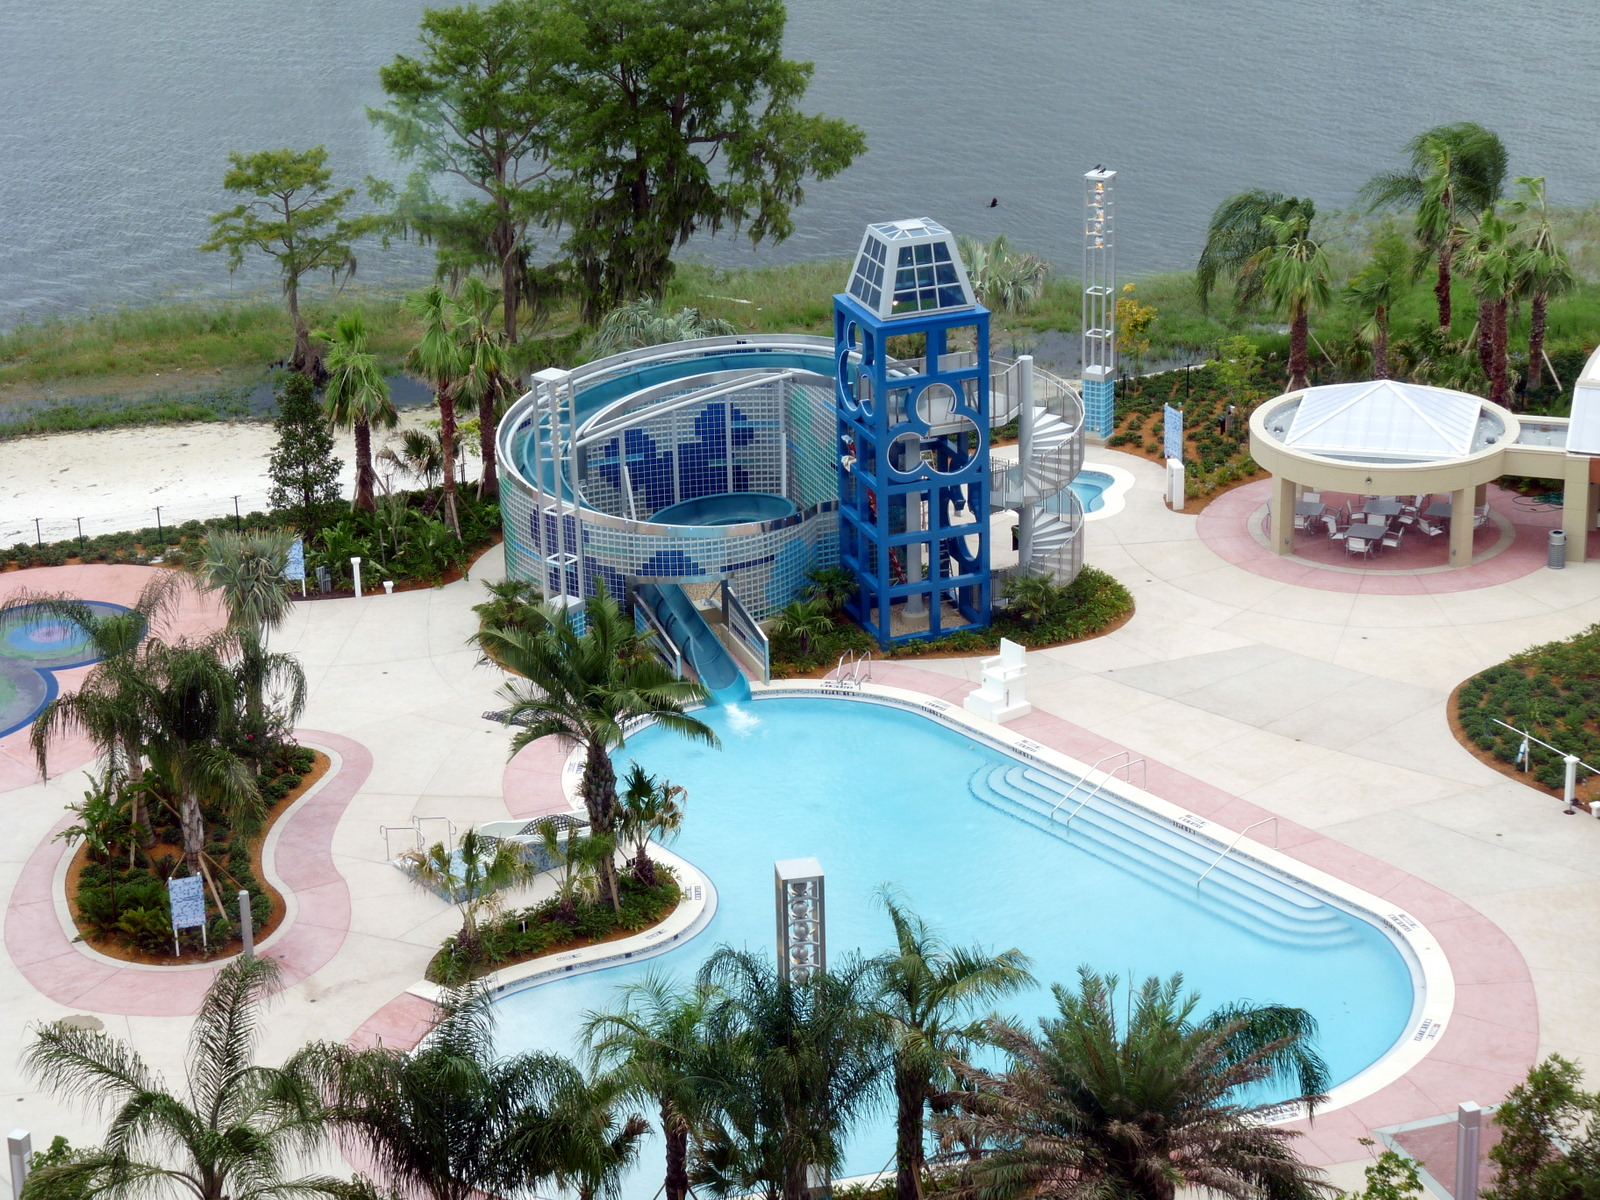 Bay Lake Towers Pool area. Photo Credit: Disney Parks Blog